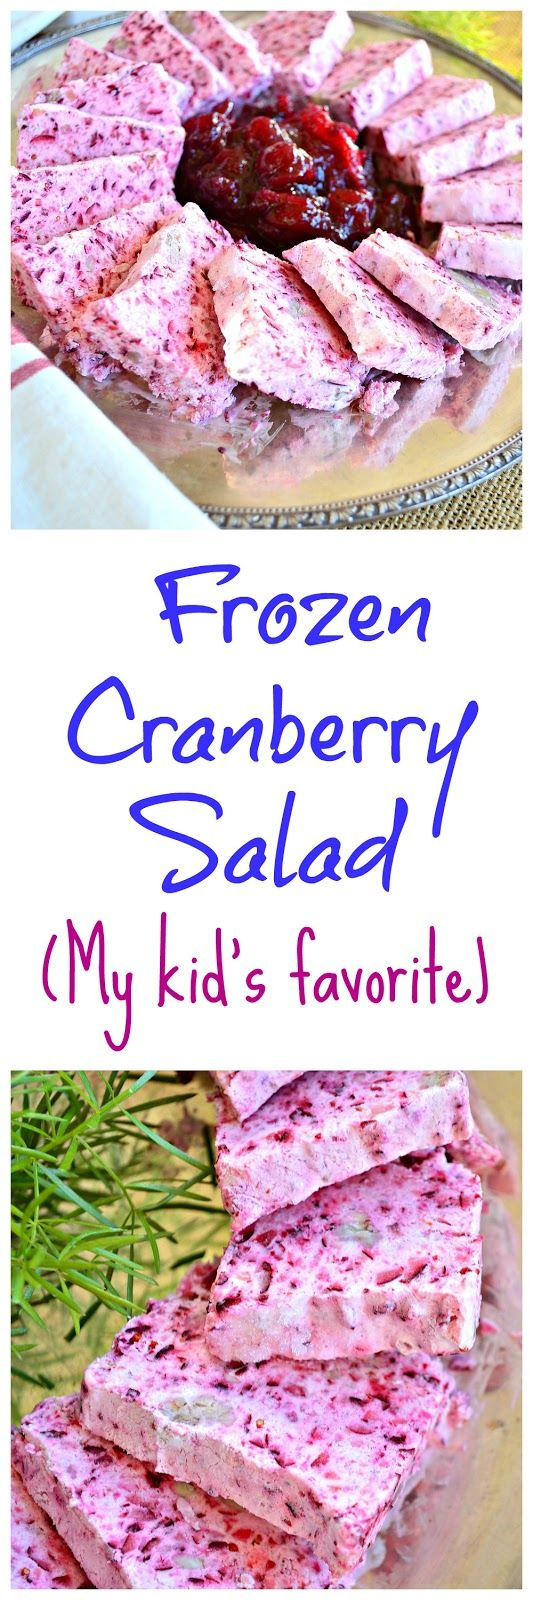 This is How I Cook: Frozen Cranberry Salad